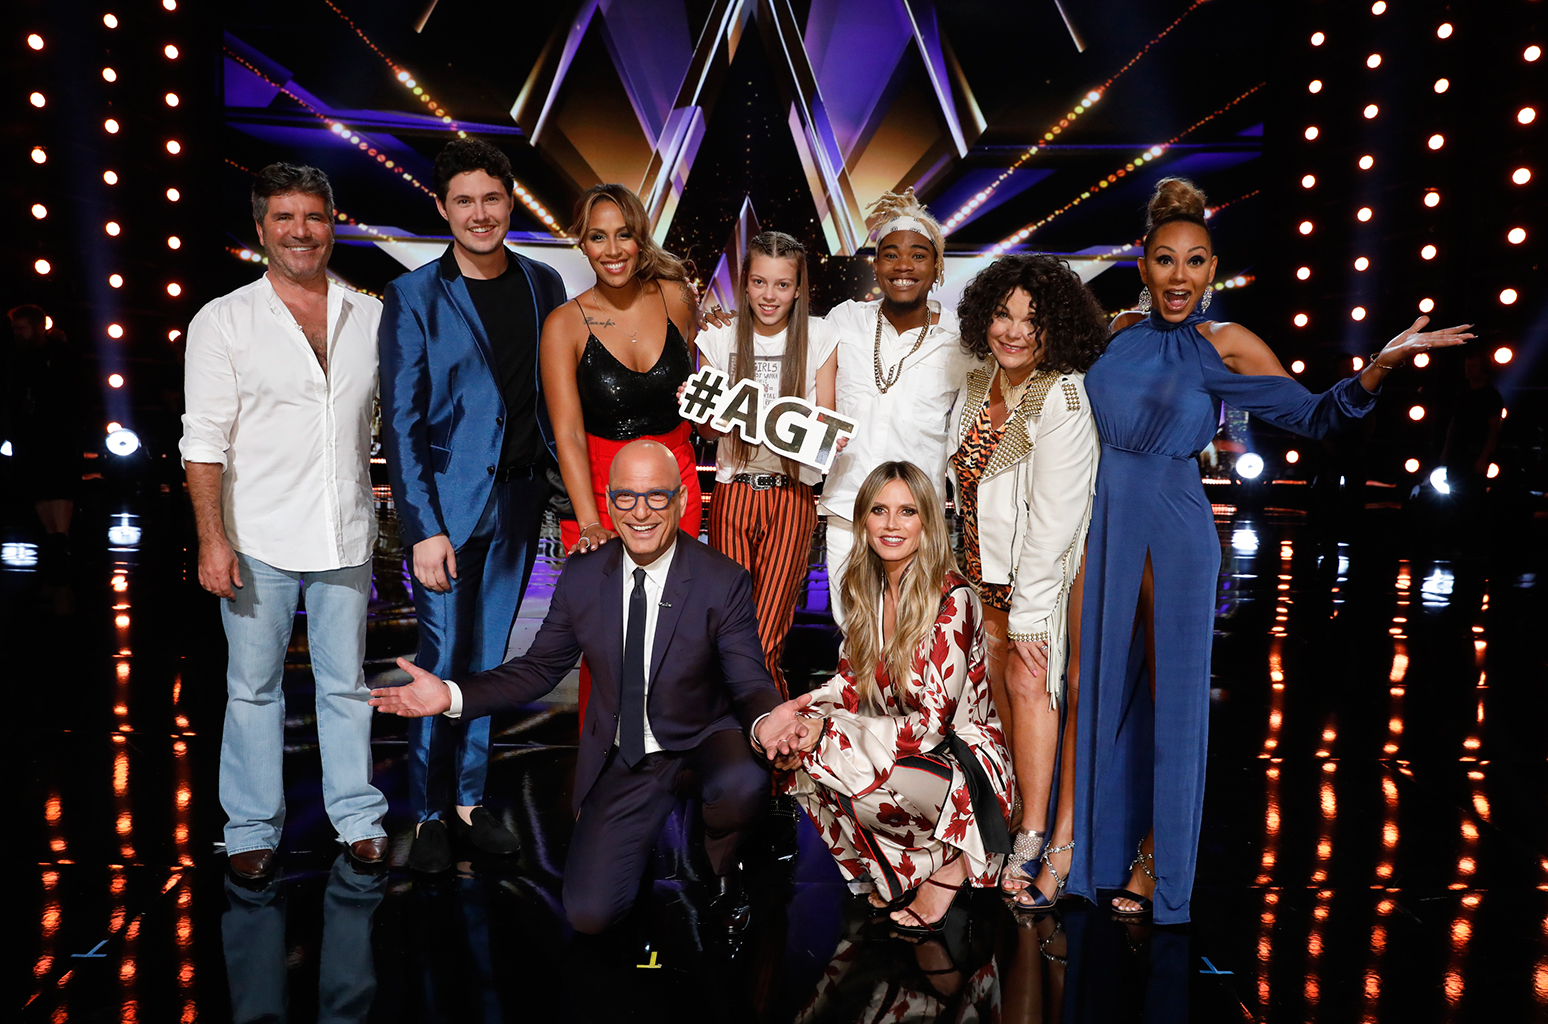 AGT finalists and judges posing for a picture